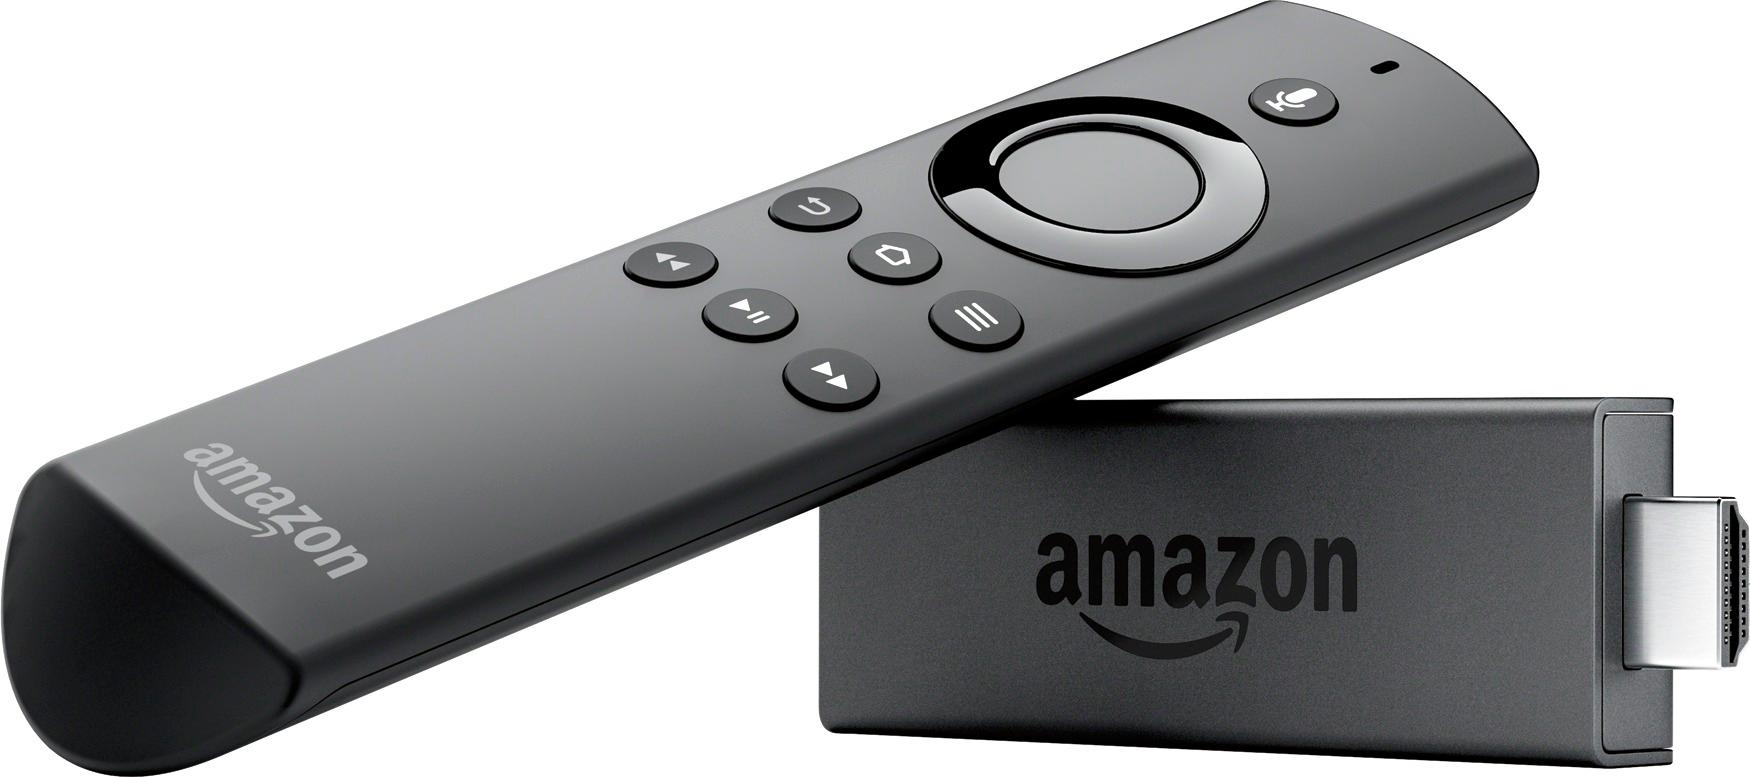 meilleur smart box TV